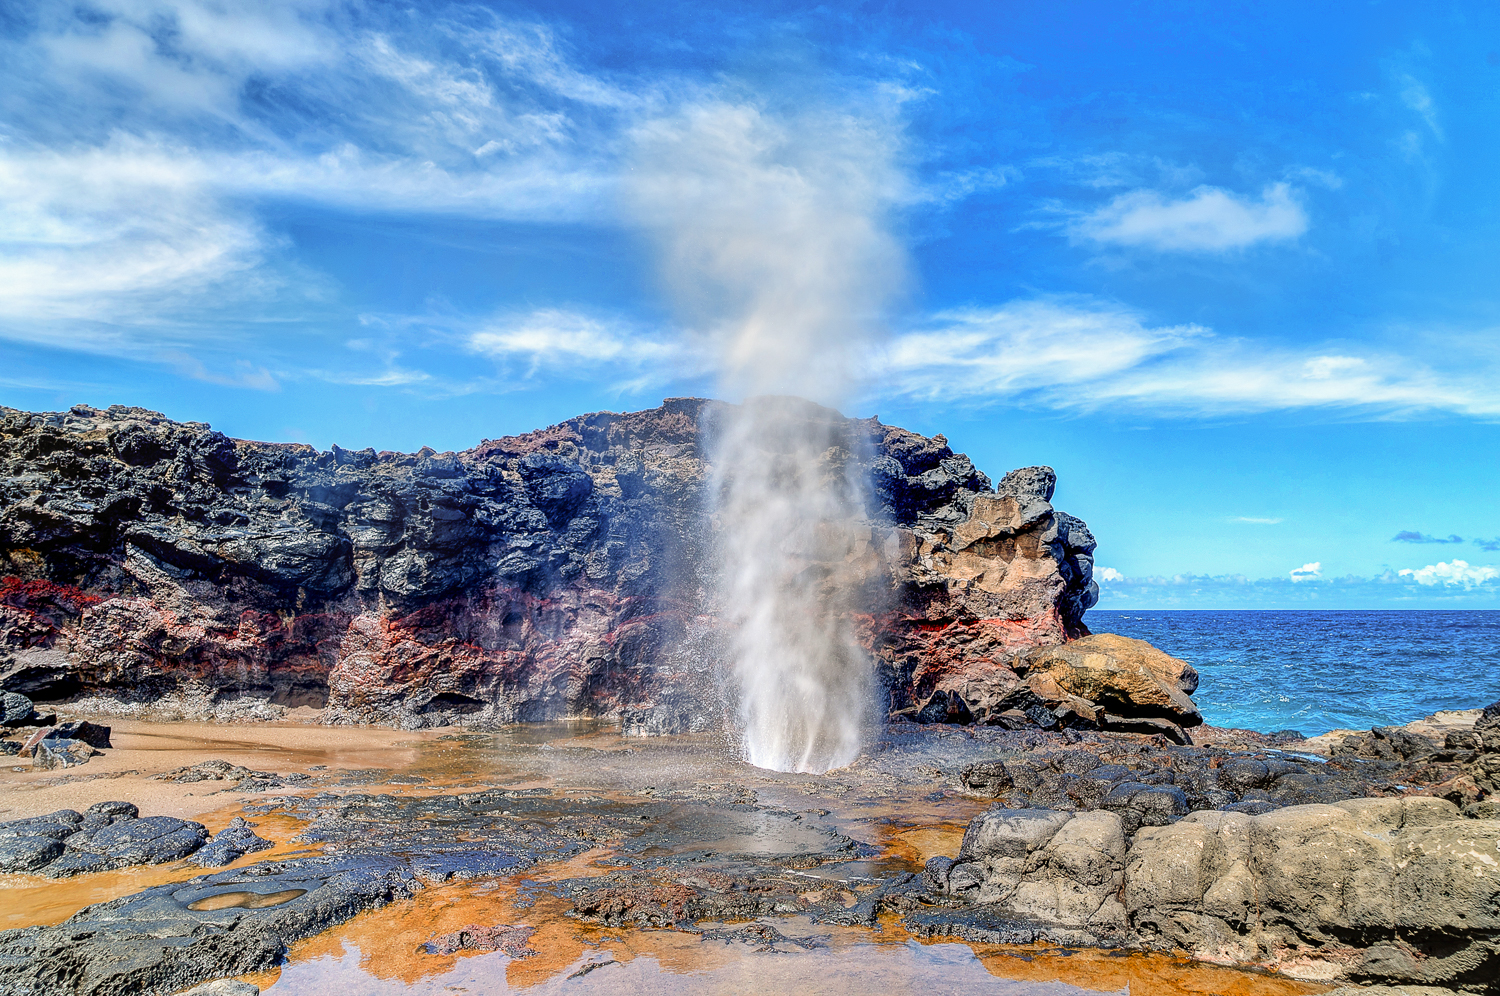 The Nakalele Blowhole